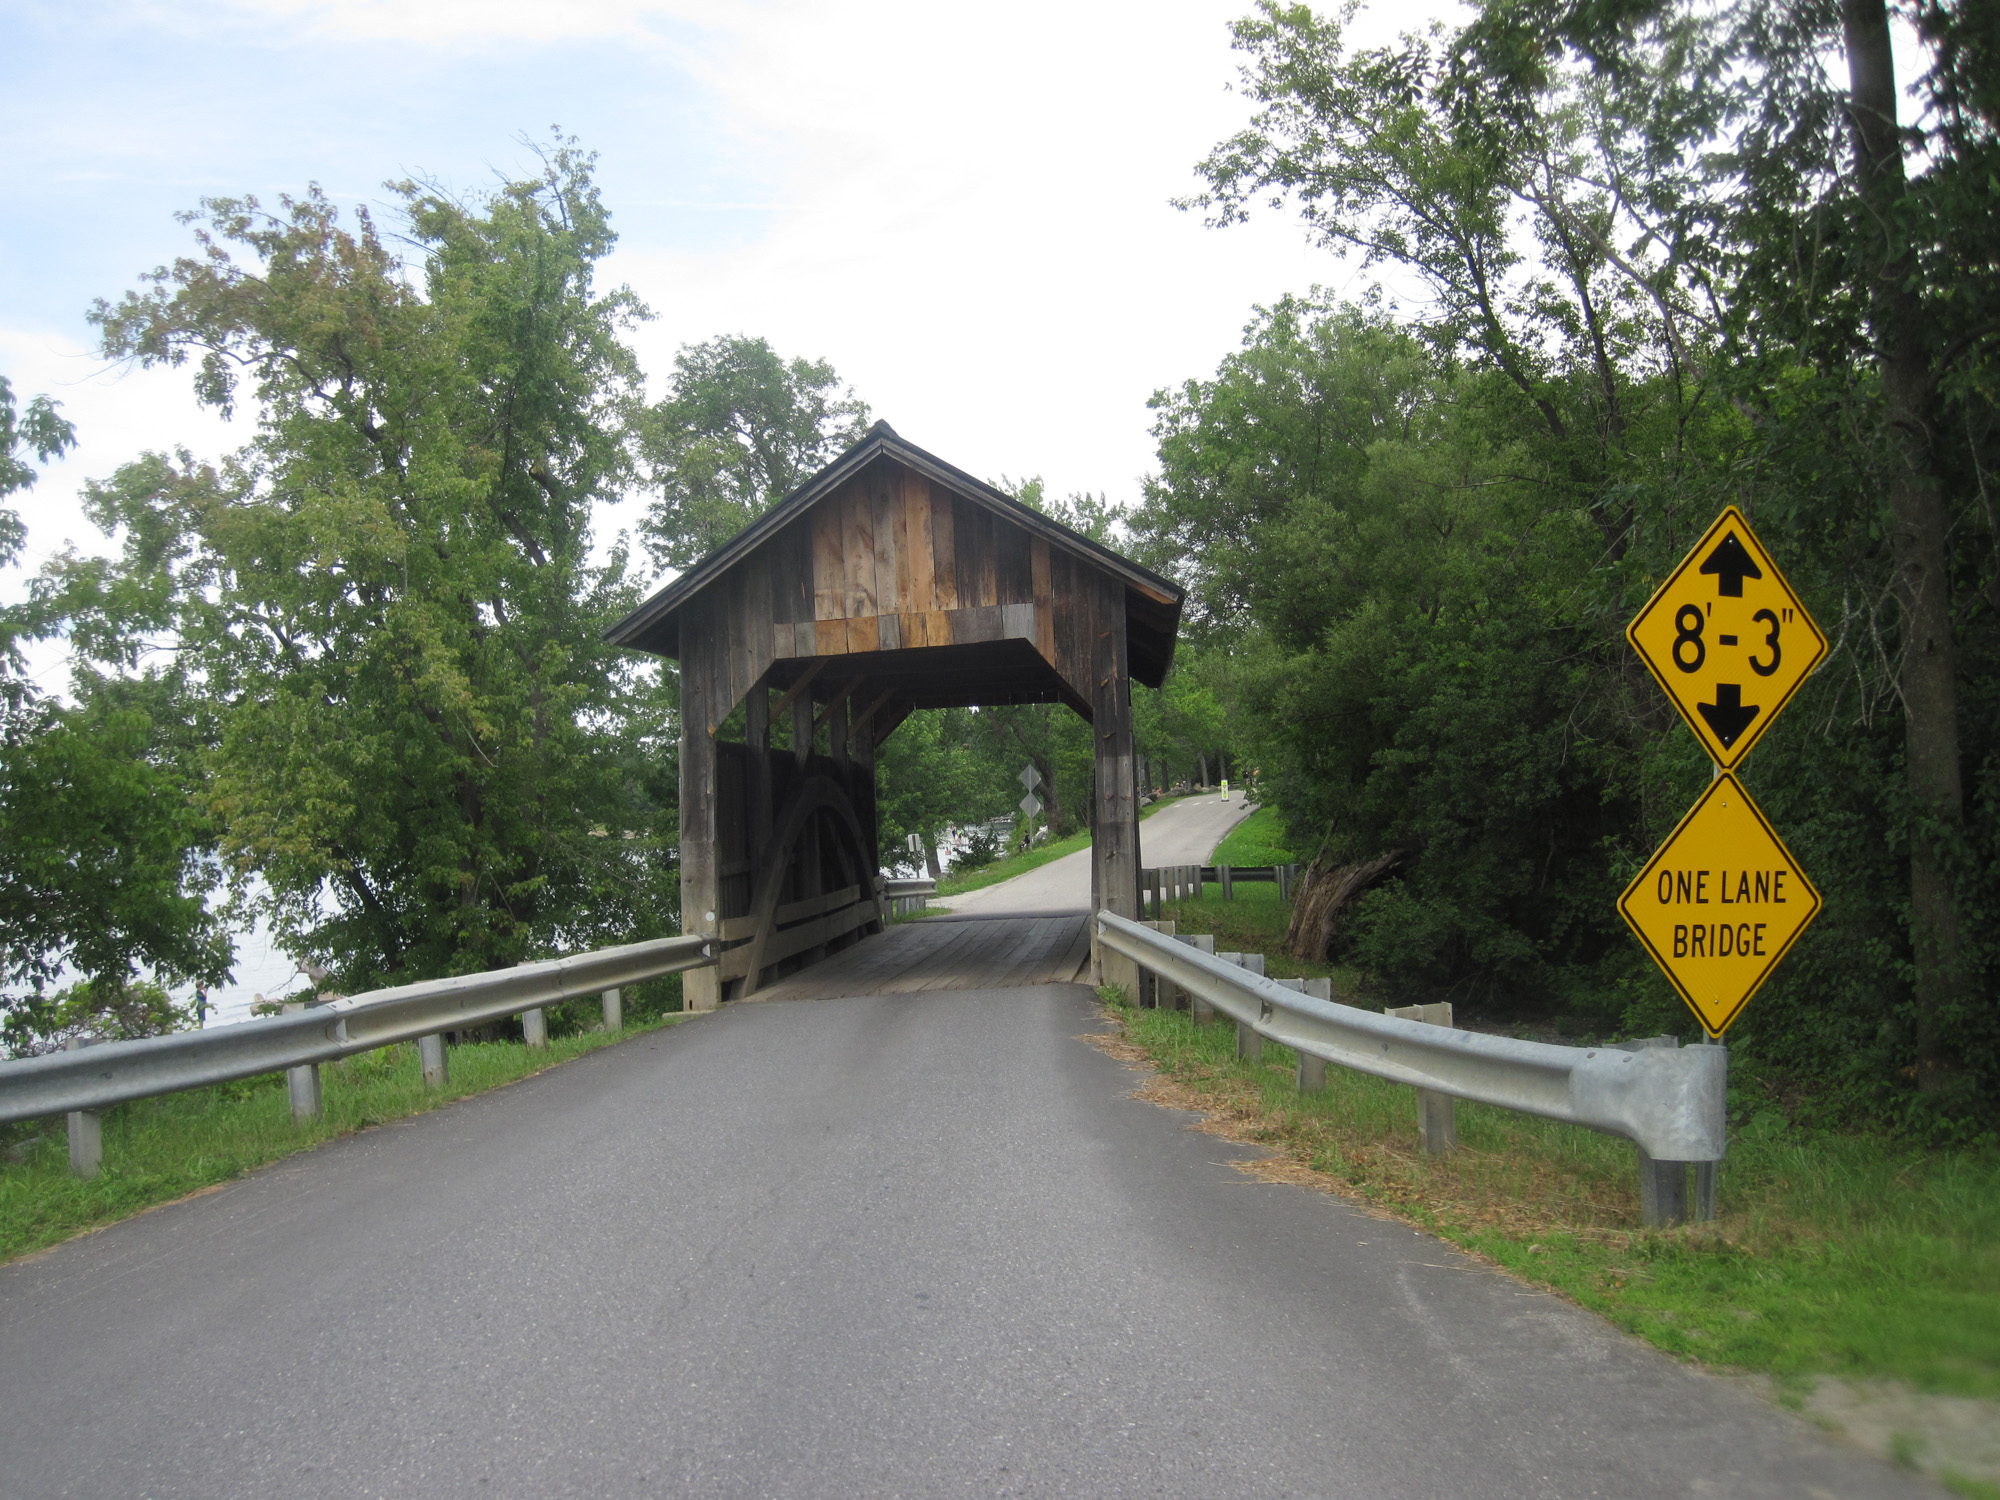 JDRF Ride - Covered bridge